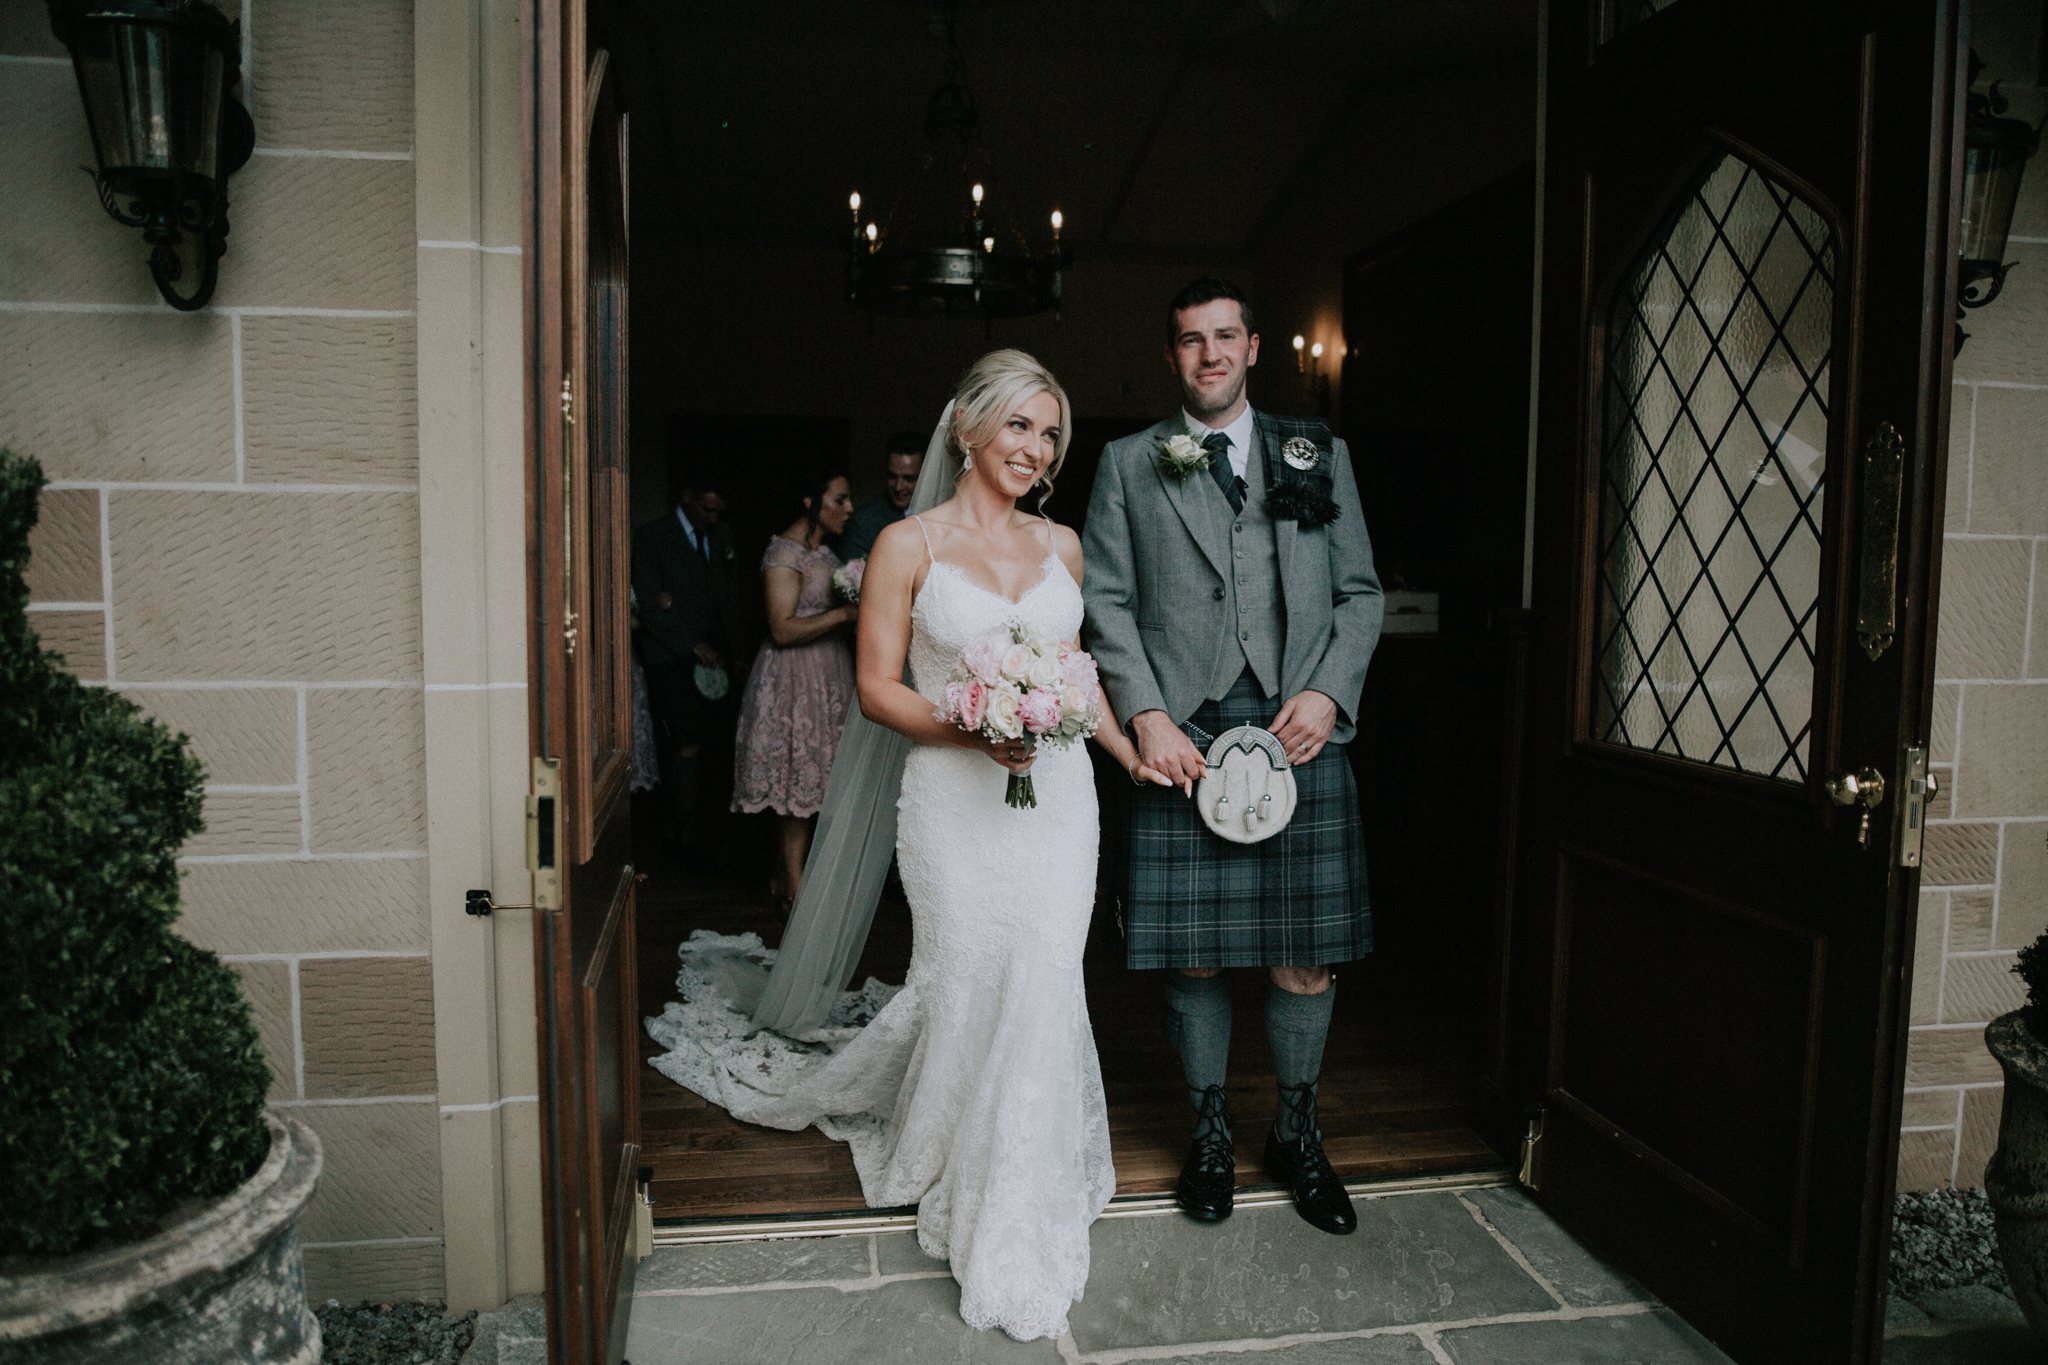 The exit as a husband and wife, Crossbasket castle